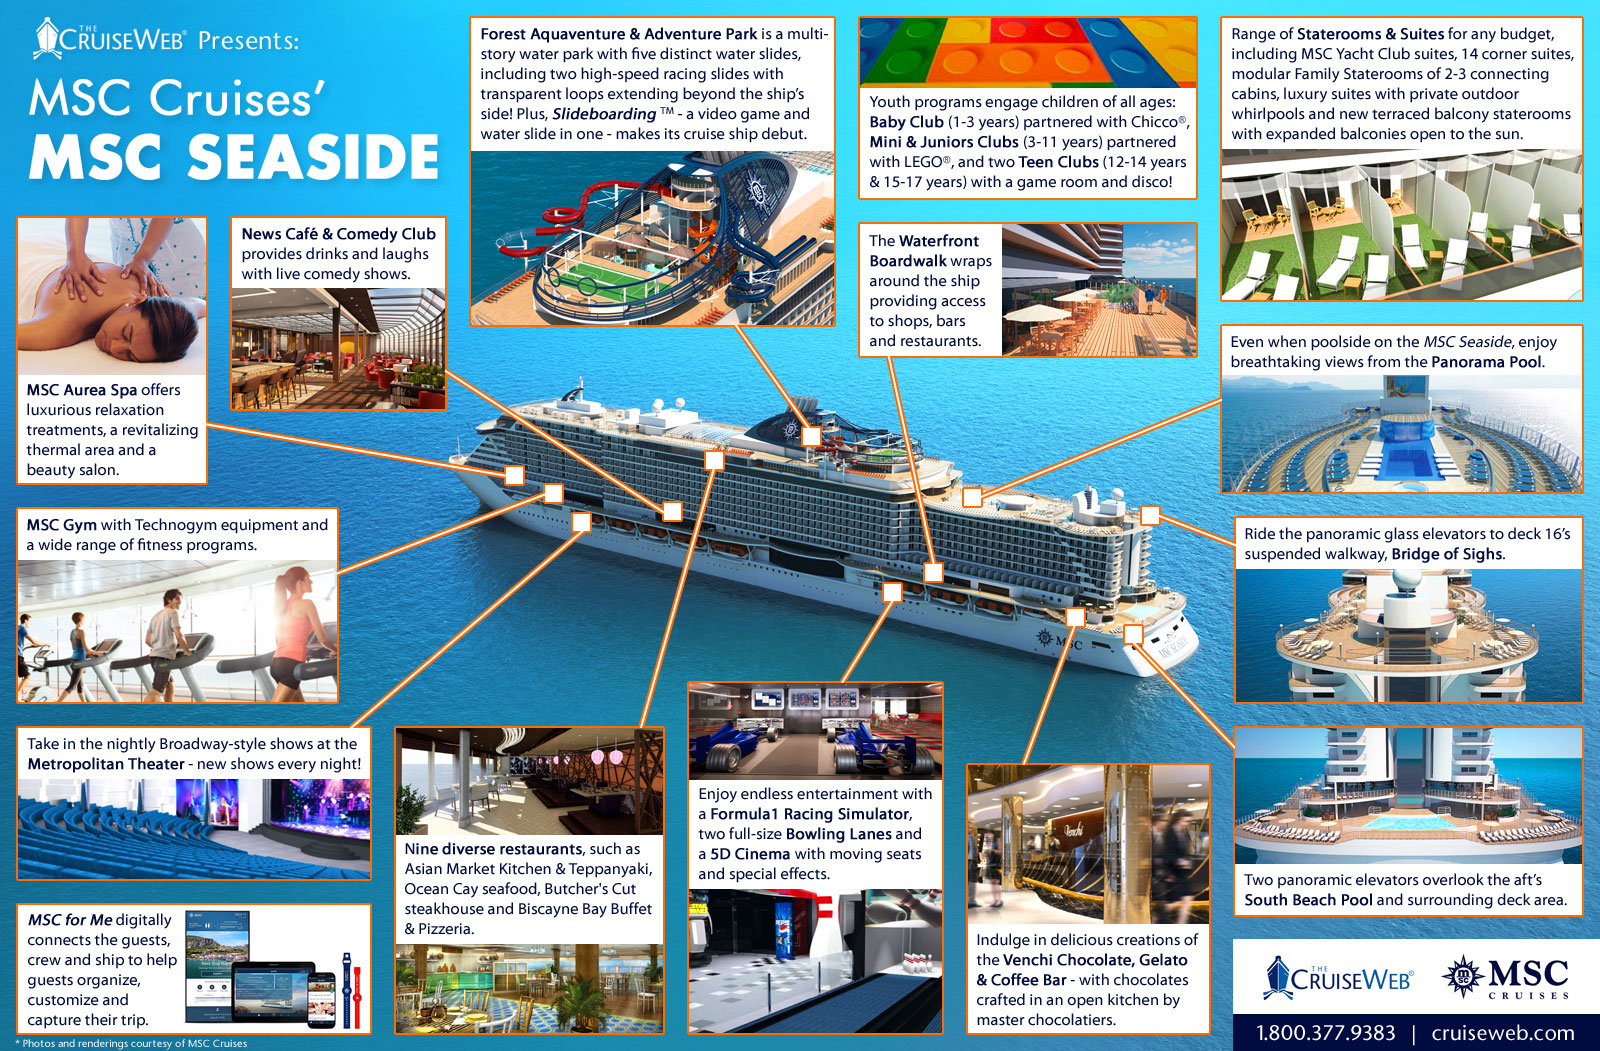 Inside MSC Seaside: A Cruise Ship Infographic